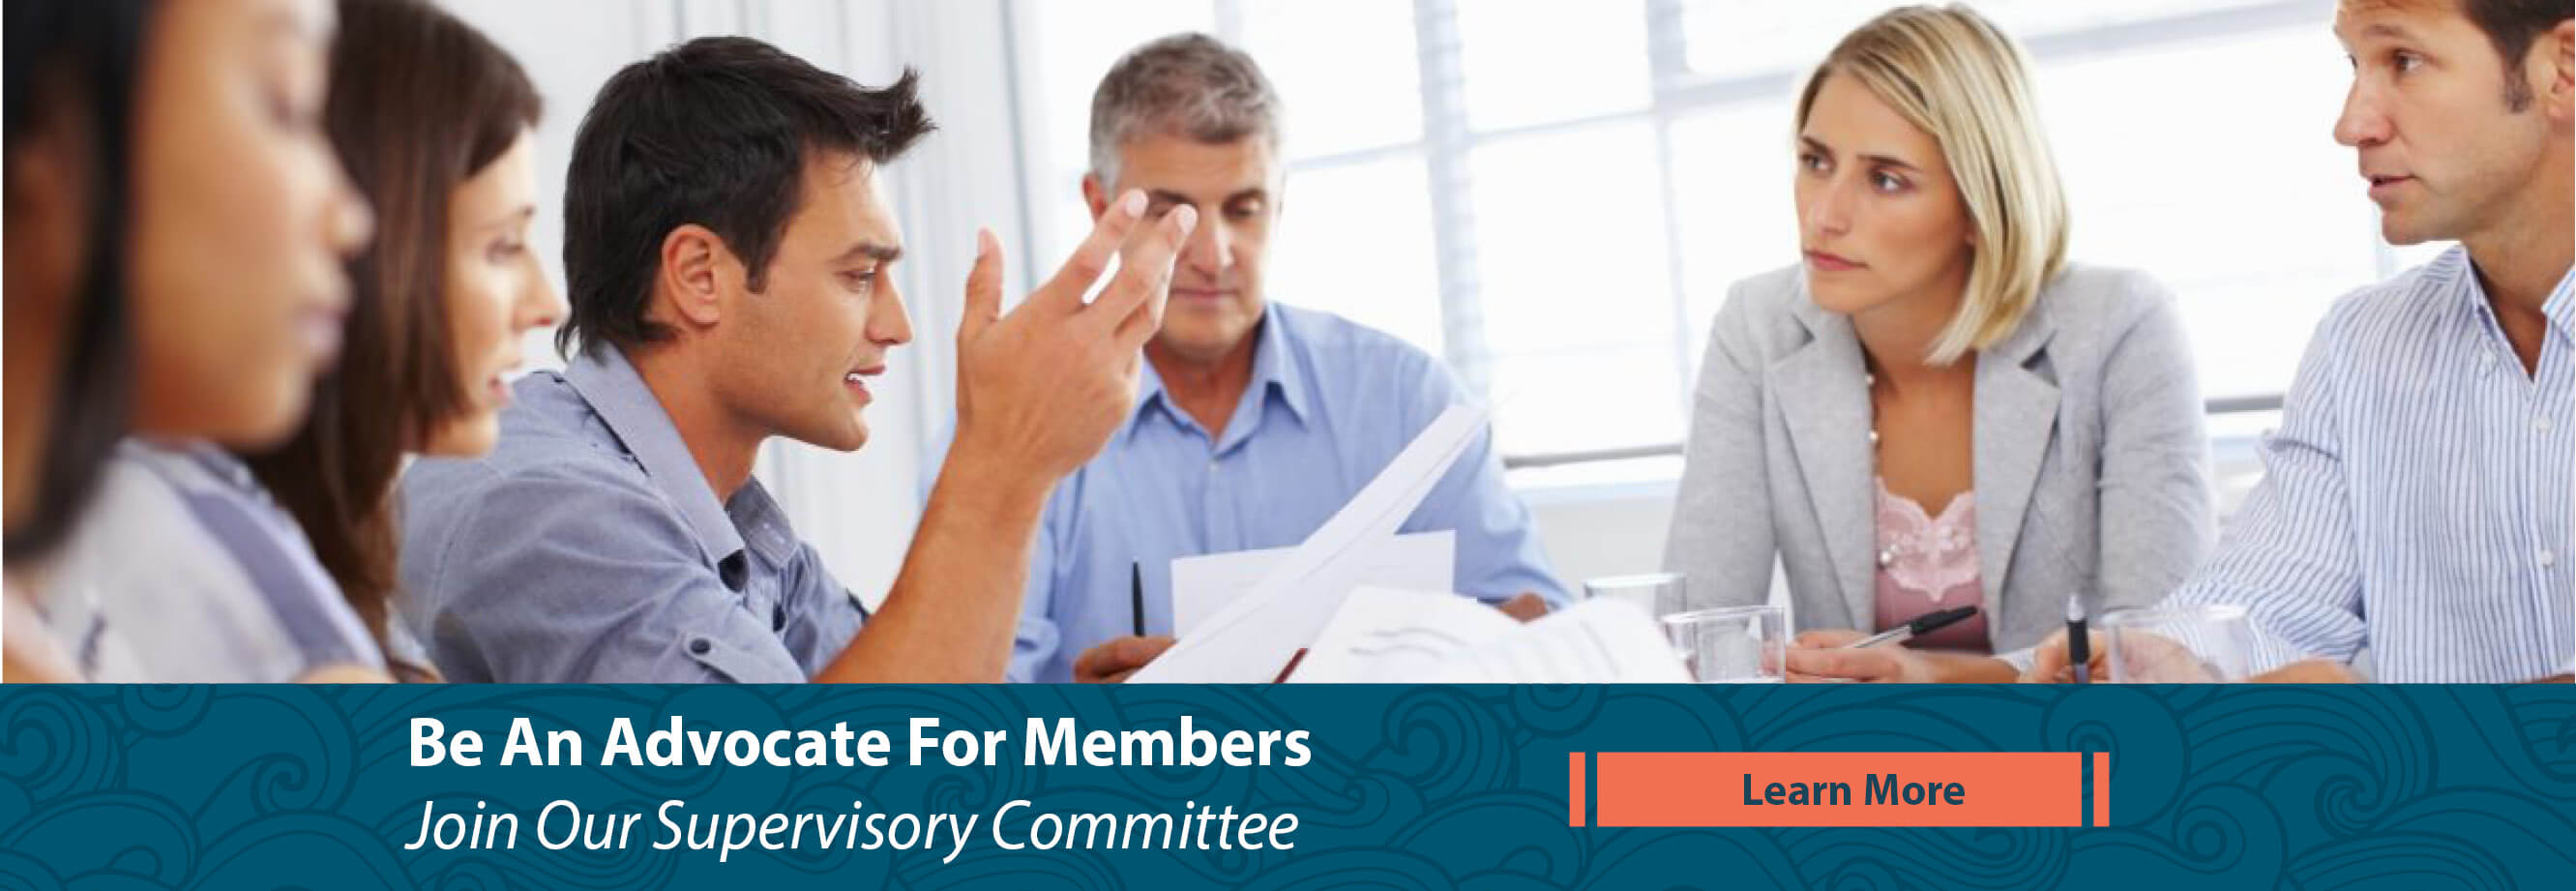 Be An Advocate For Members Join Our Supervisory Committee